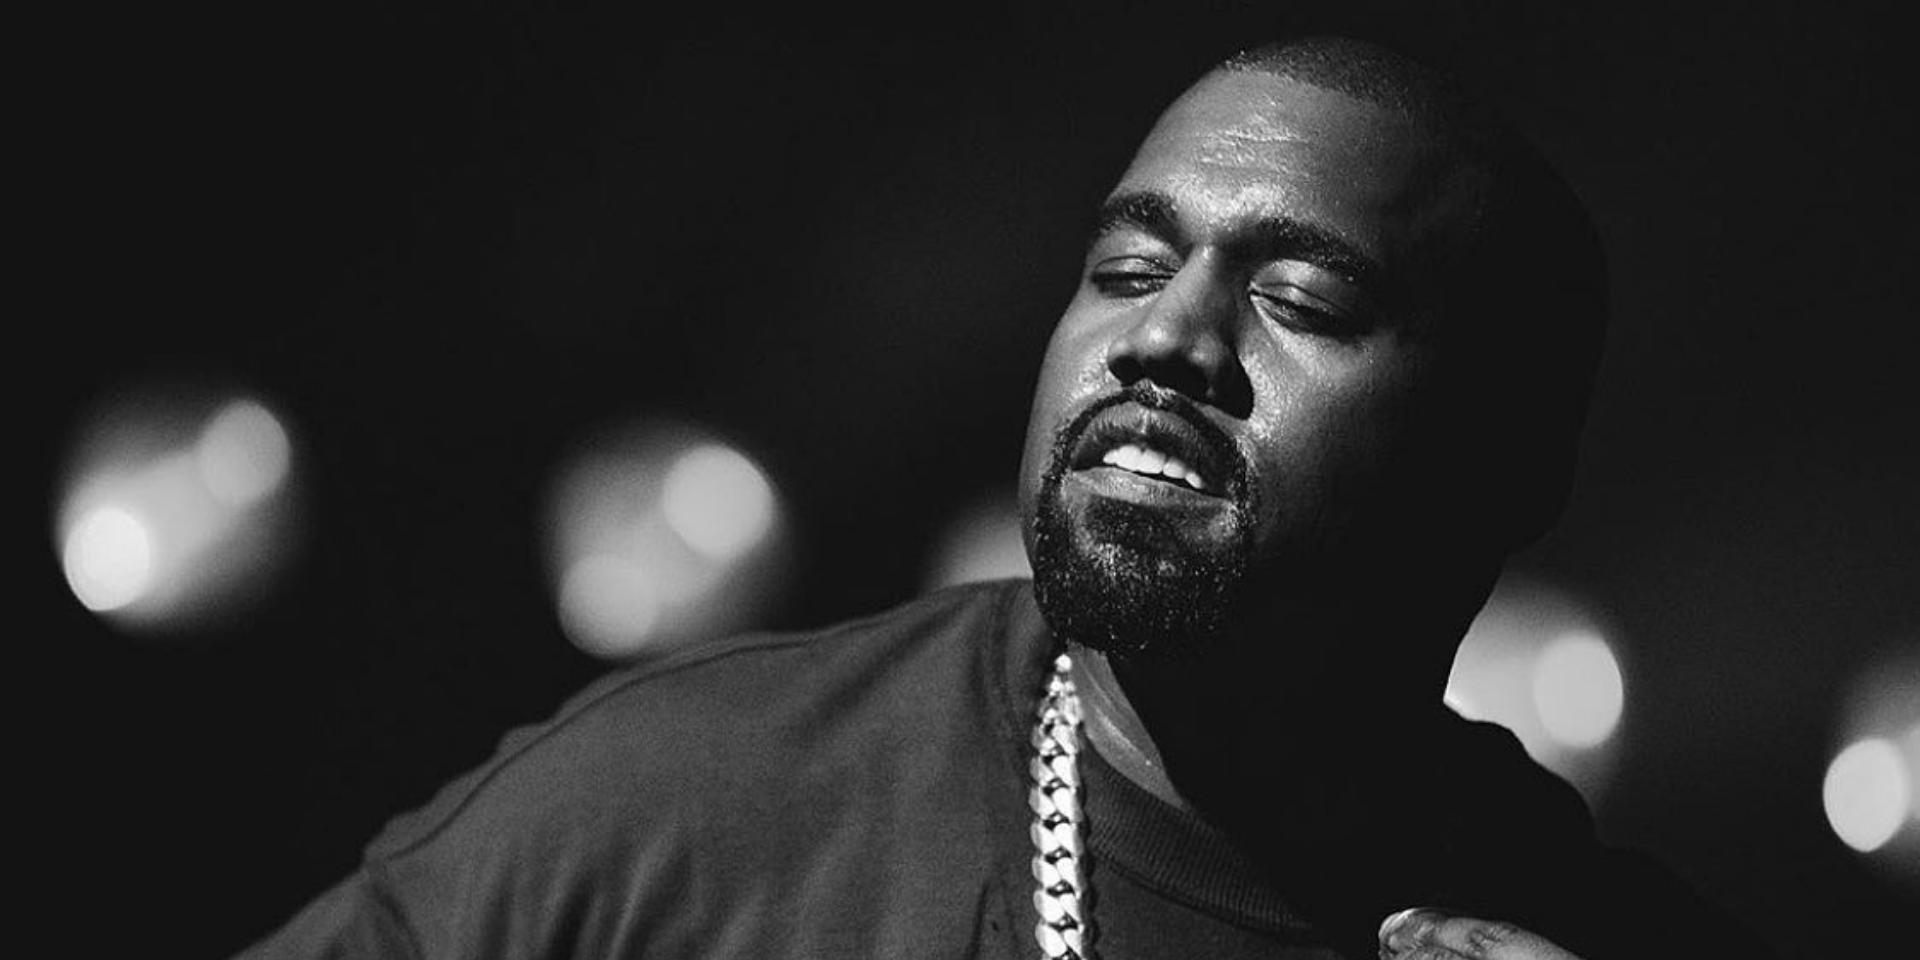 Kanye West does another livestream for new album 'DONDA', reveals features from The Weeknd, Kid Cudi, Playboi Carti and more